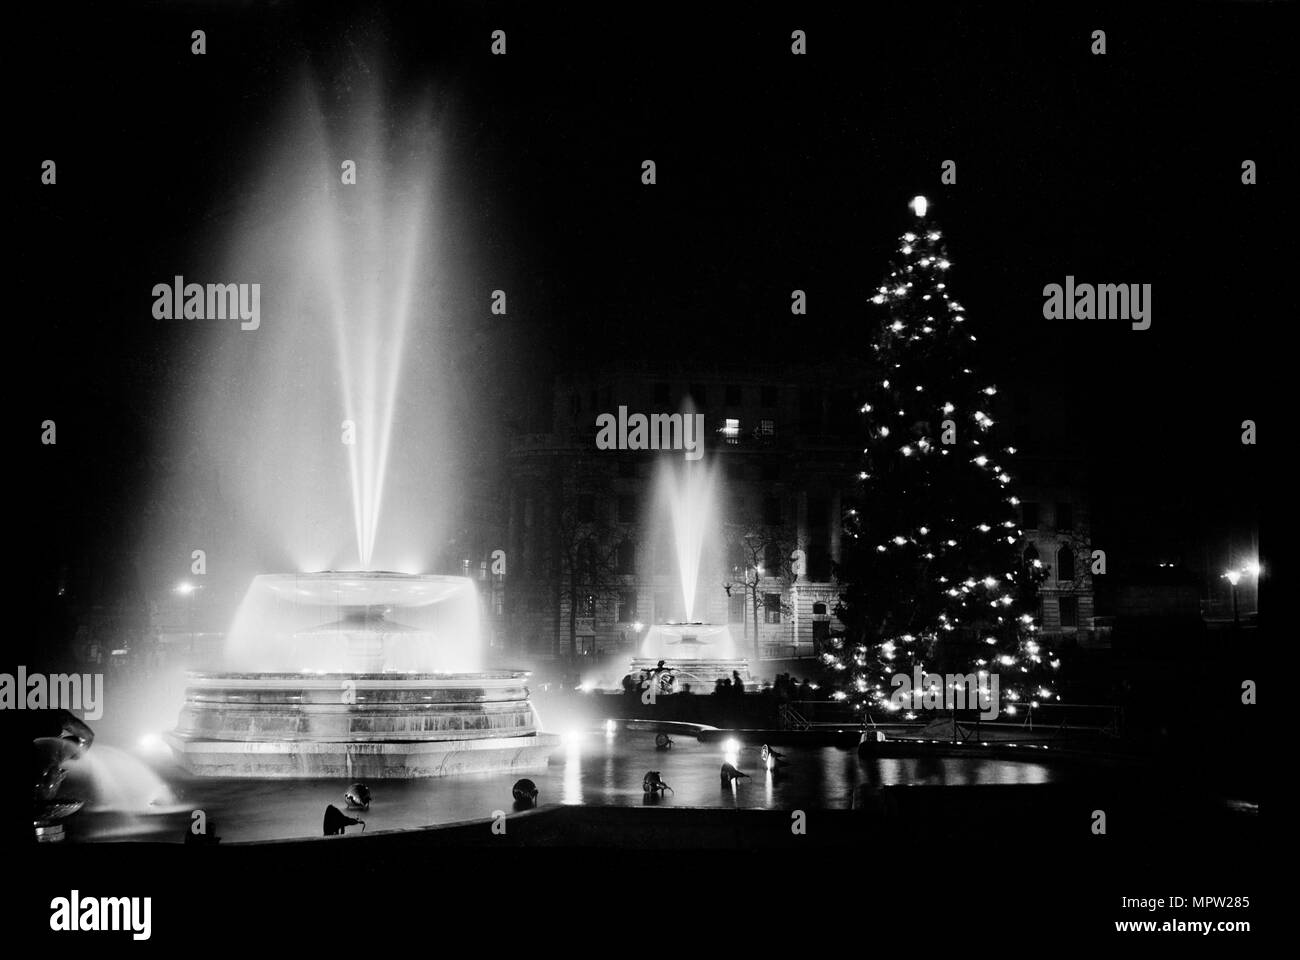 Londons Christmas Tree In Trafalgar Square Is Donated Each Year By Which Country.Fountains And The Christmas Tree In Trafalgar Square London